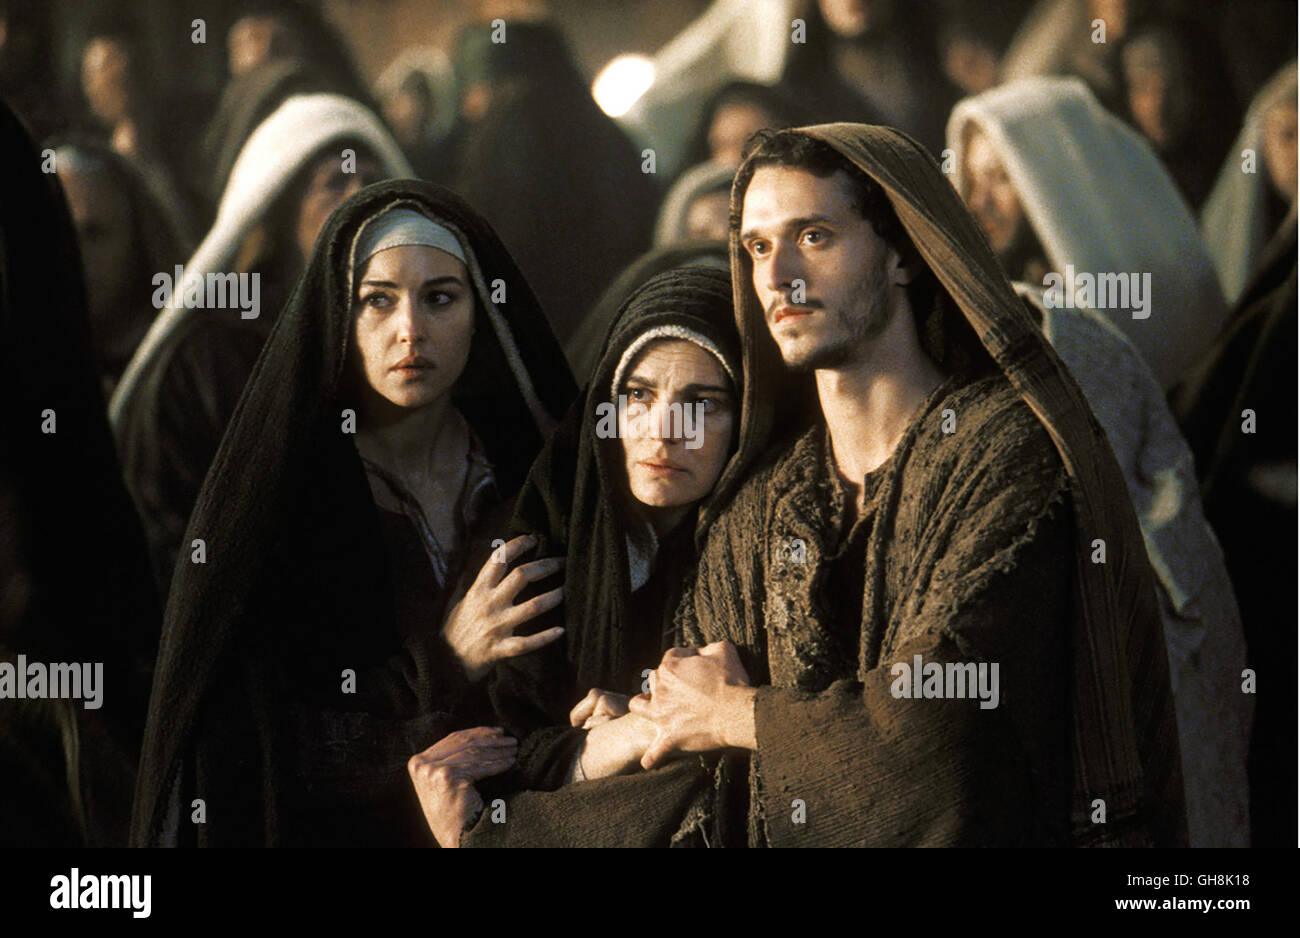 DIE PASSION CHRISTI / The Passion of the Christ ITA/USA 2003 / Mel